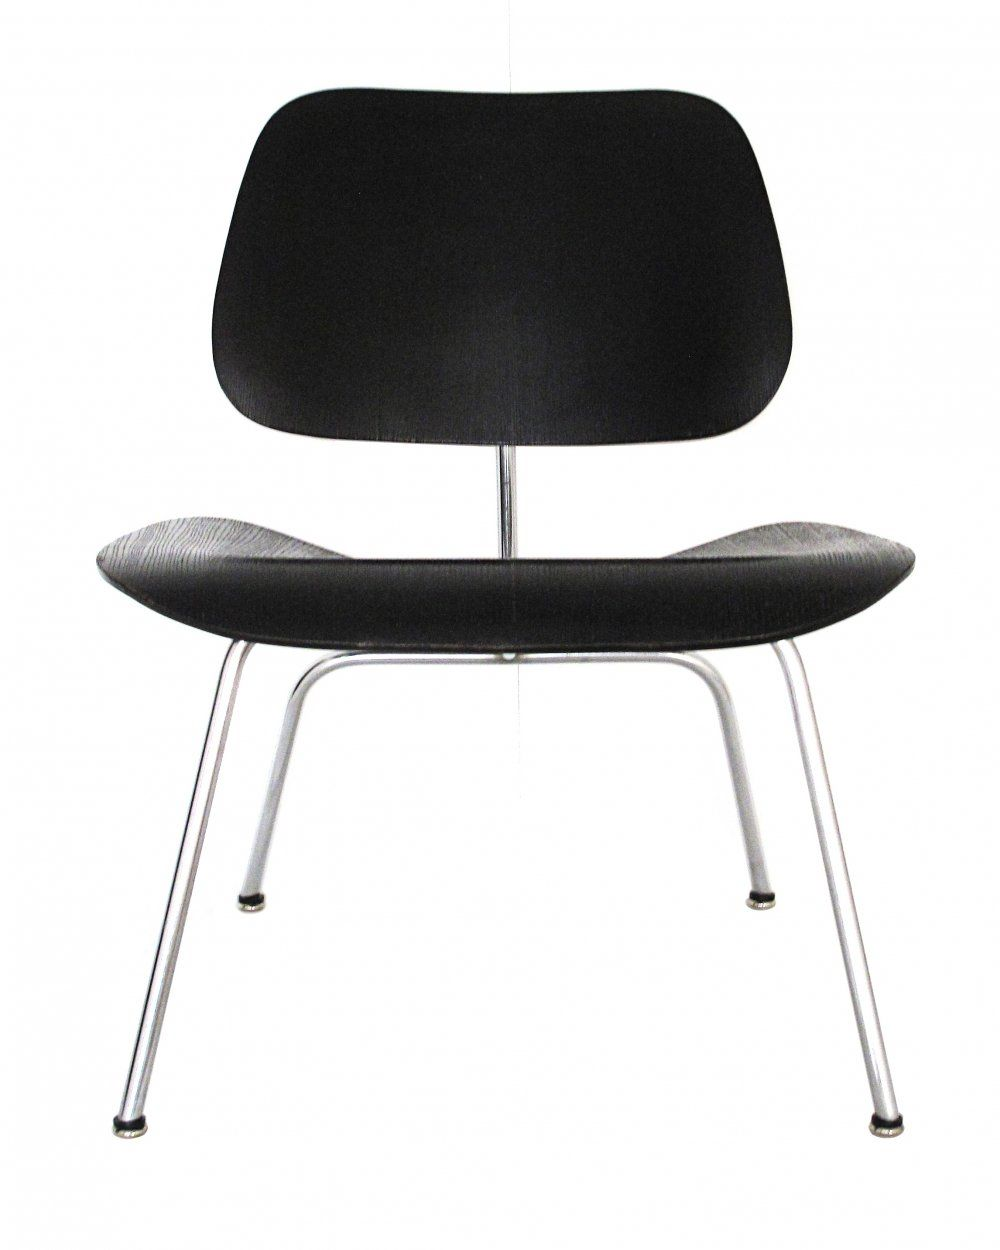 For sale lcm chair with original black aniline dye finish